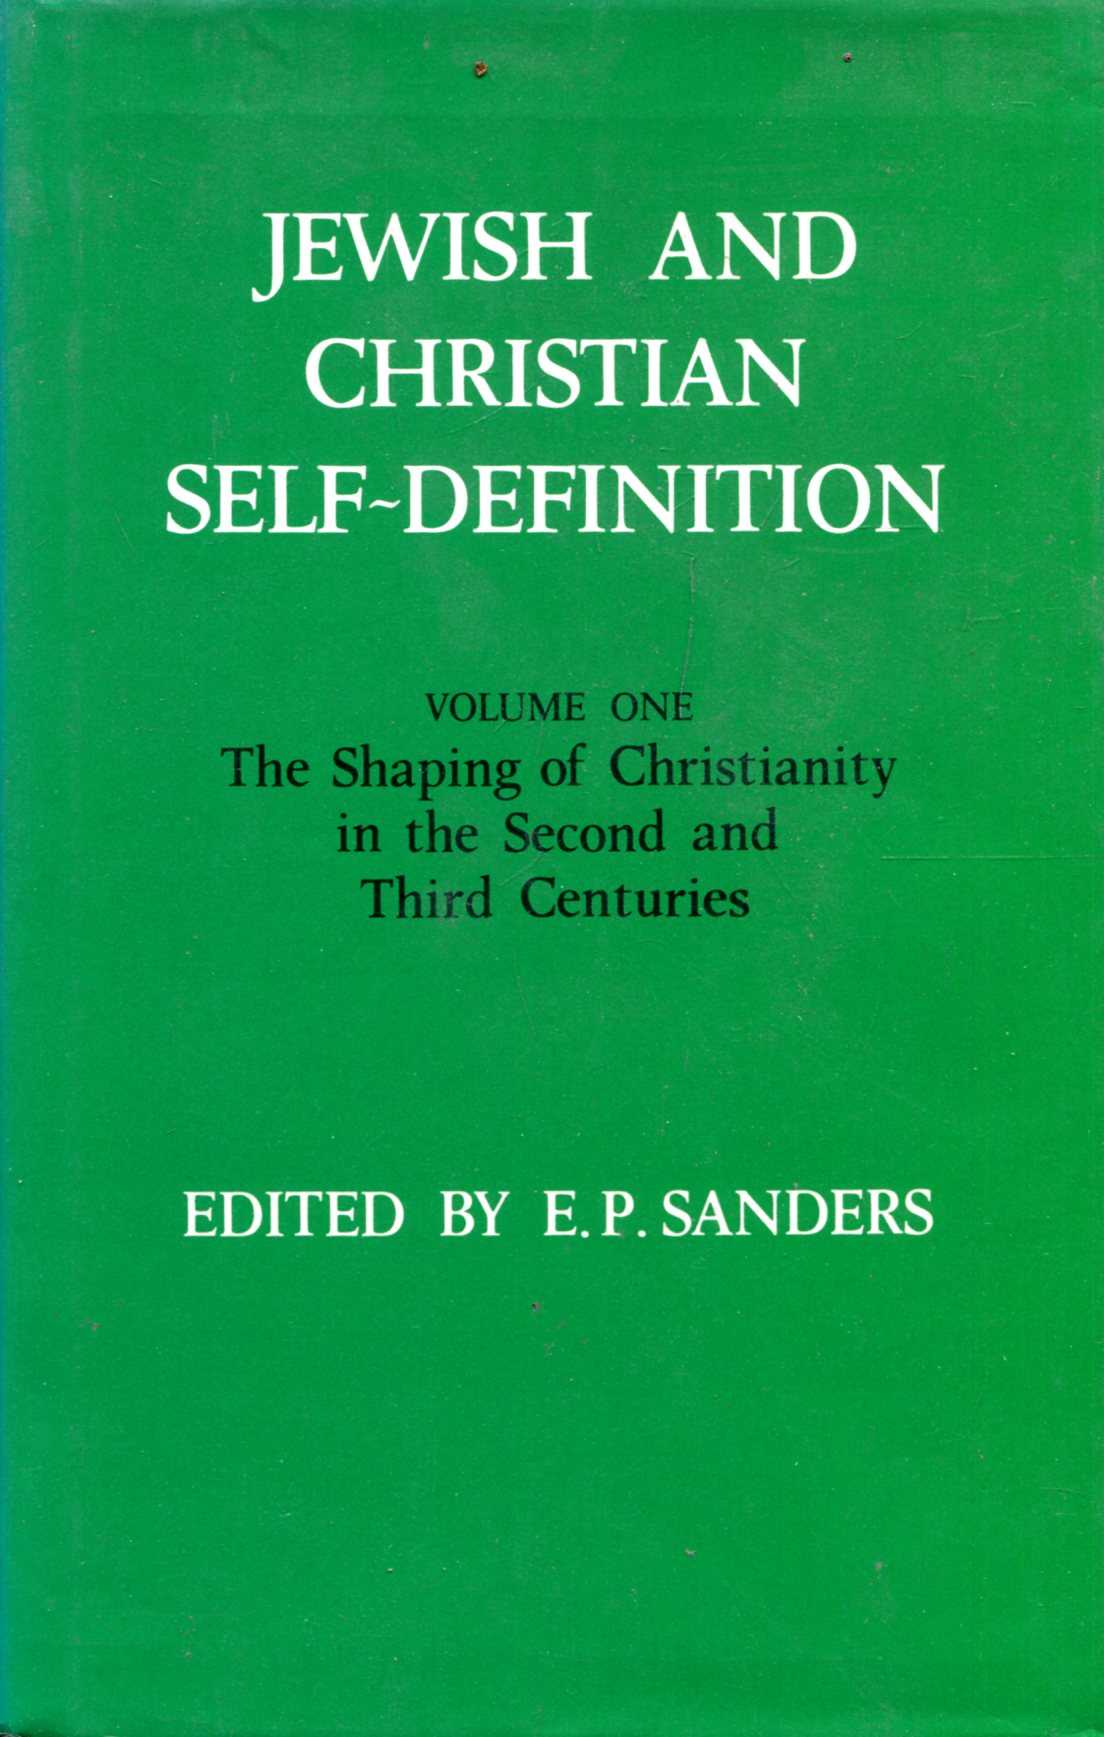 Image for Jewish and Christian Self-definition: volume one - The Shaping of Christianity in the Second and Third Centuries